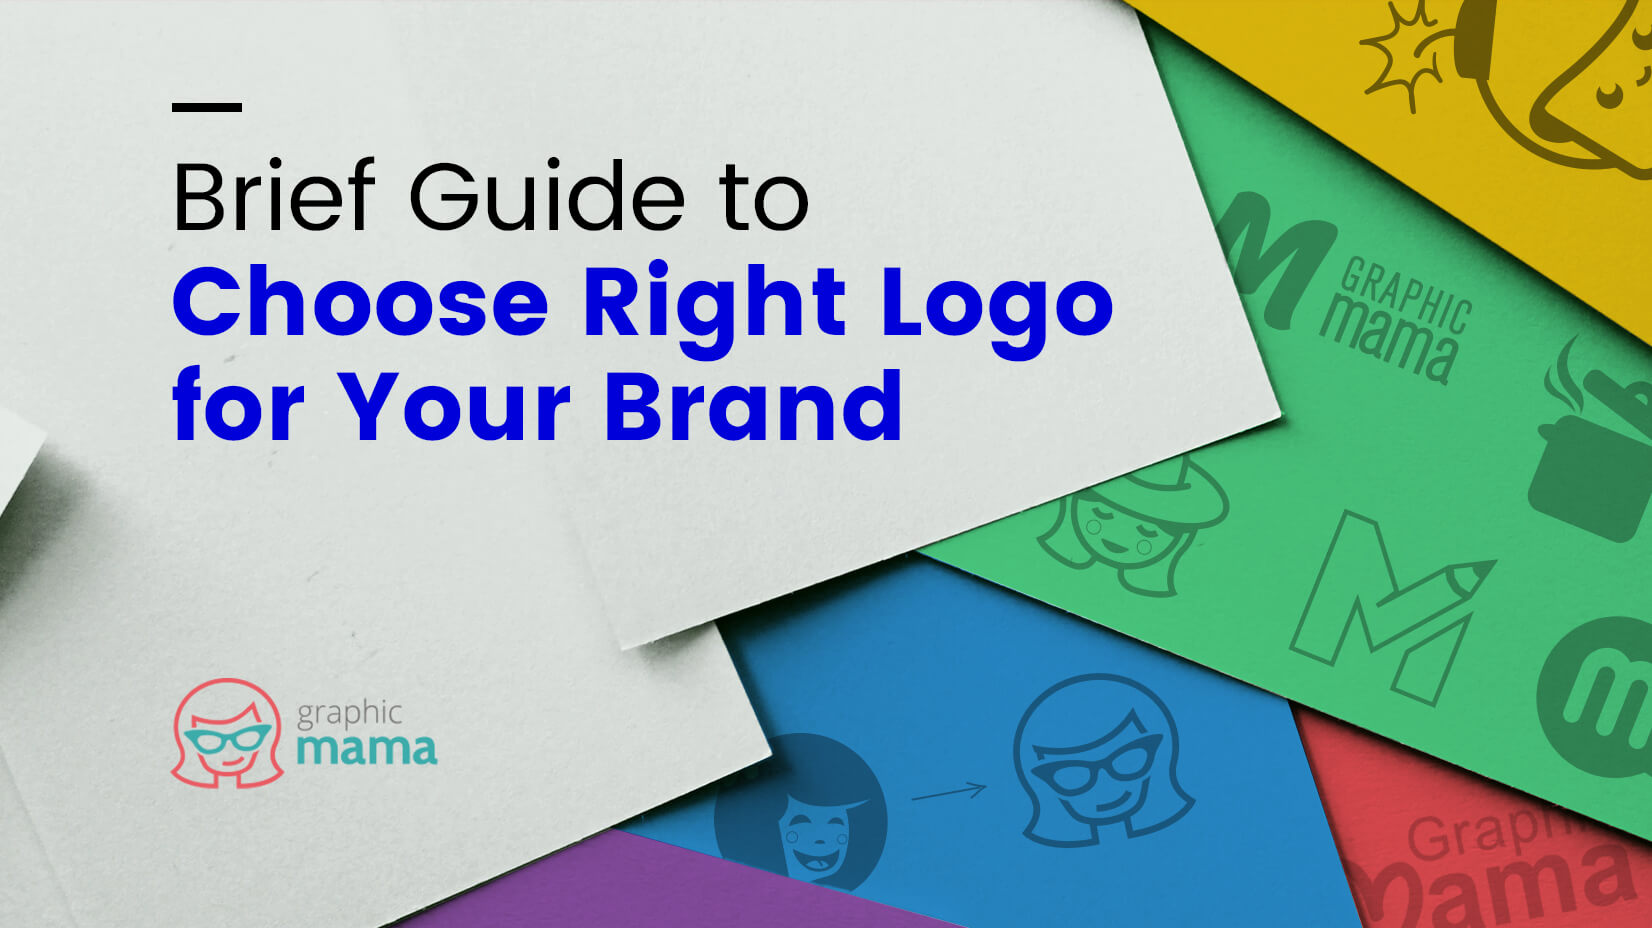 Choose Right Logo for Your Brand